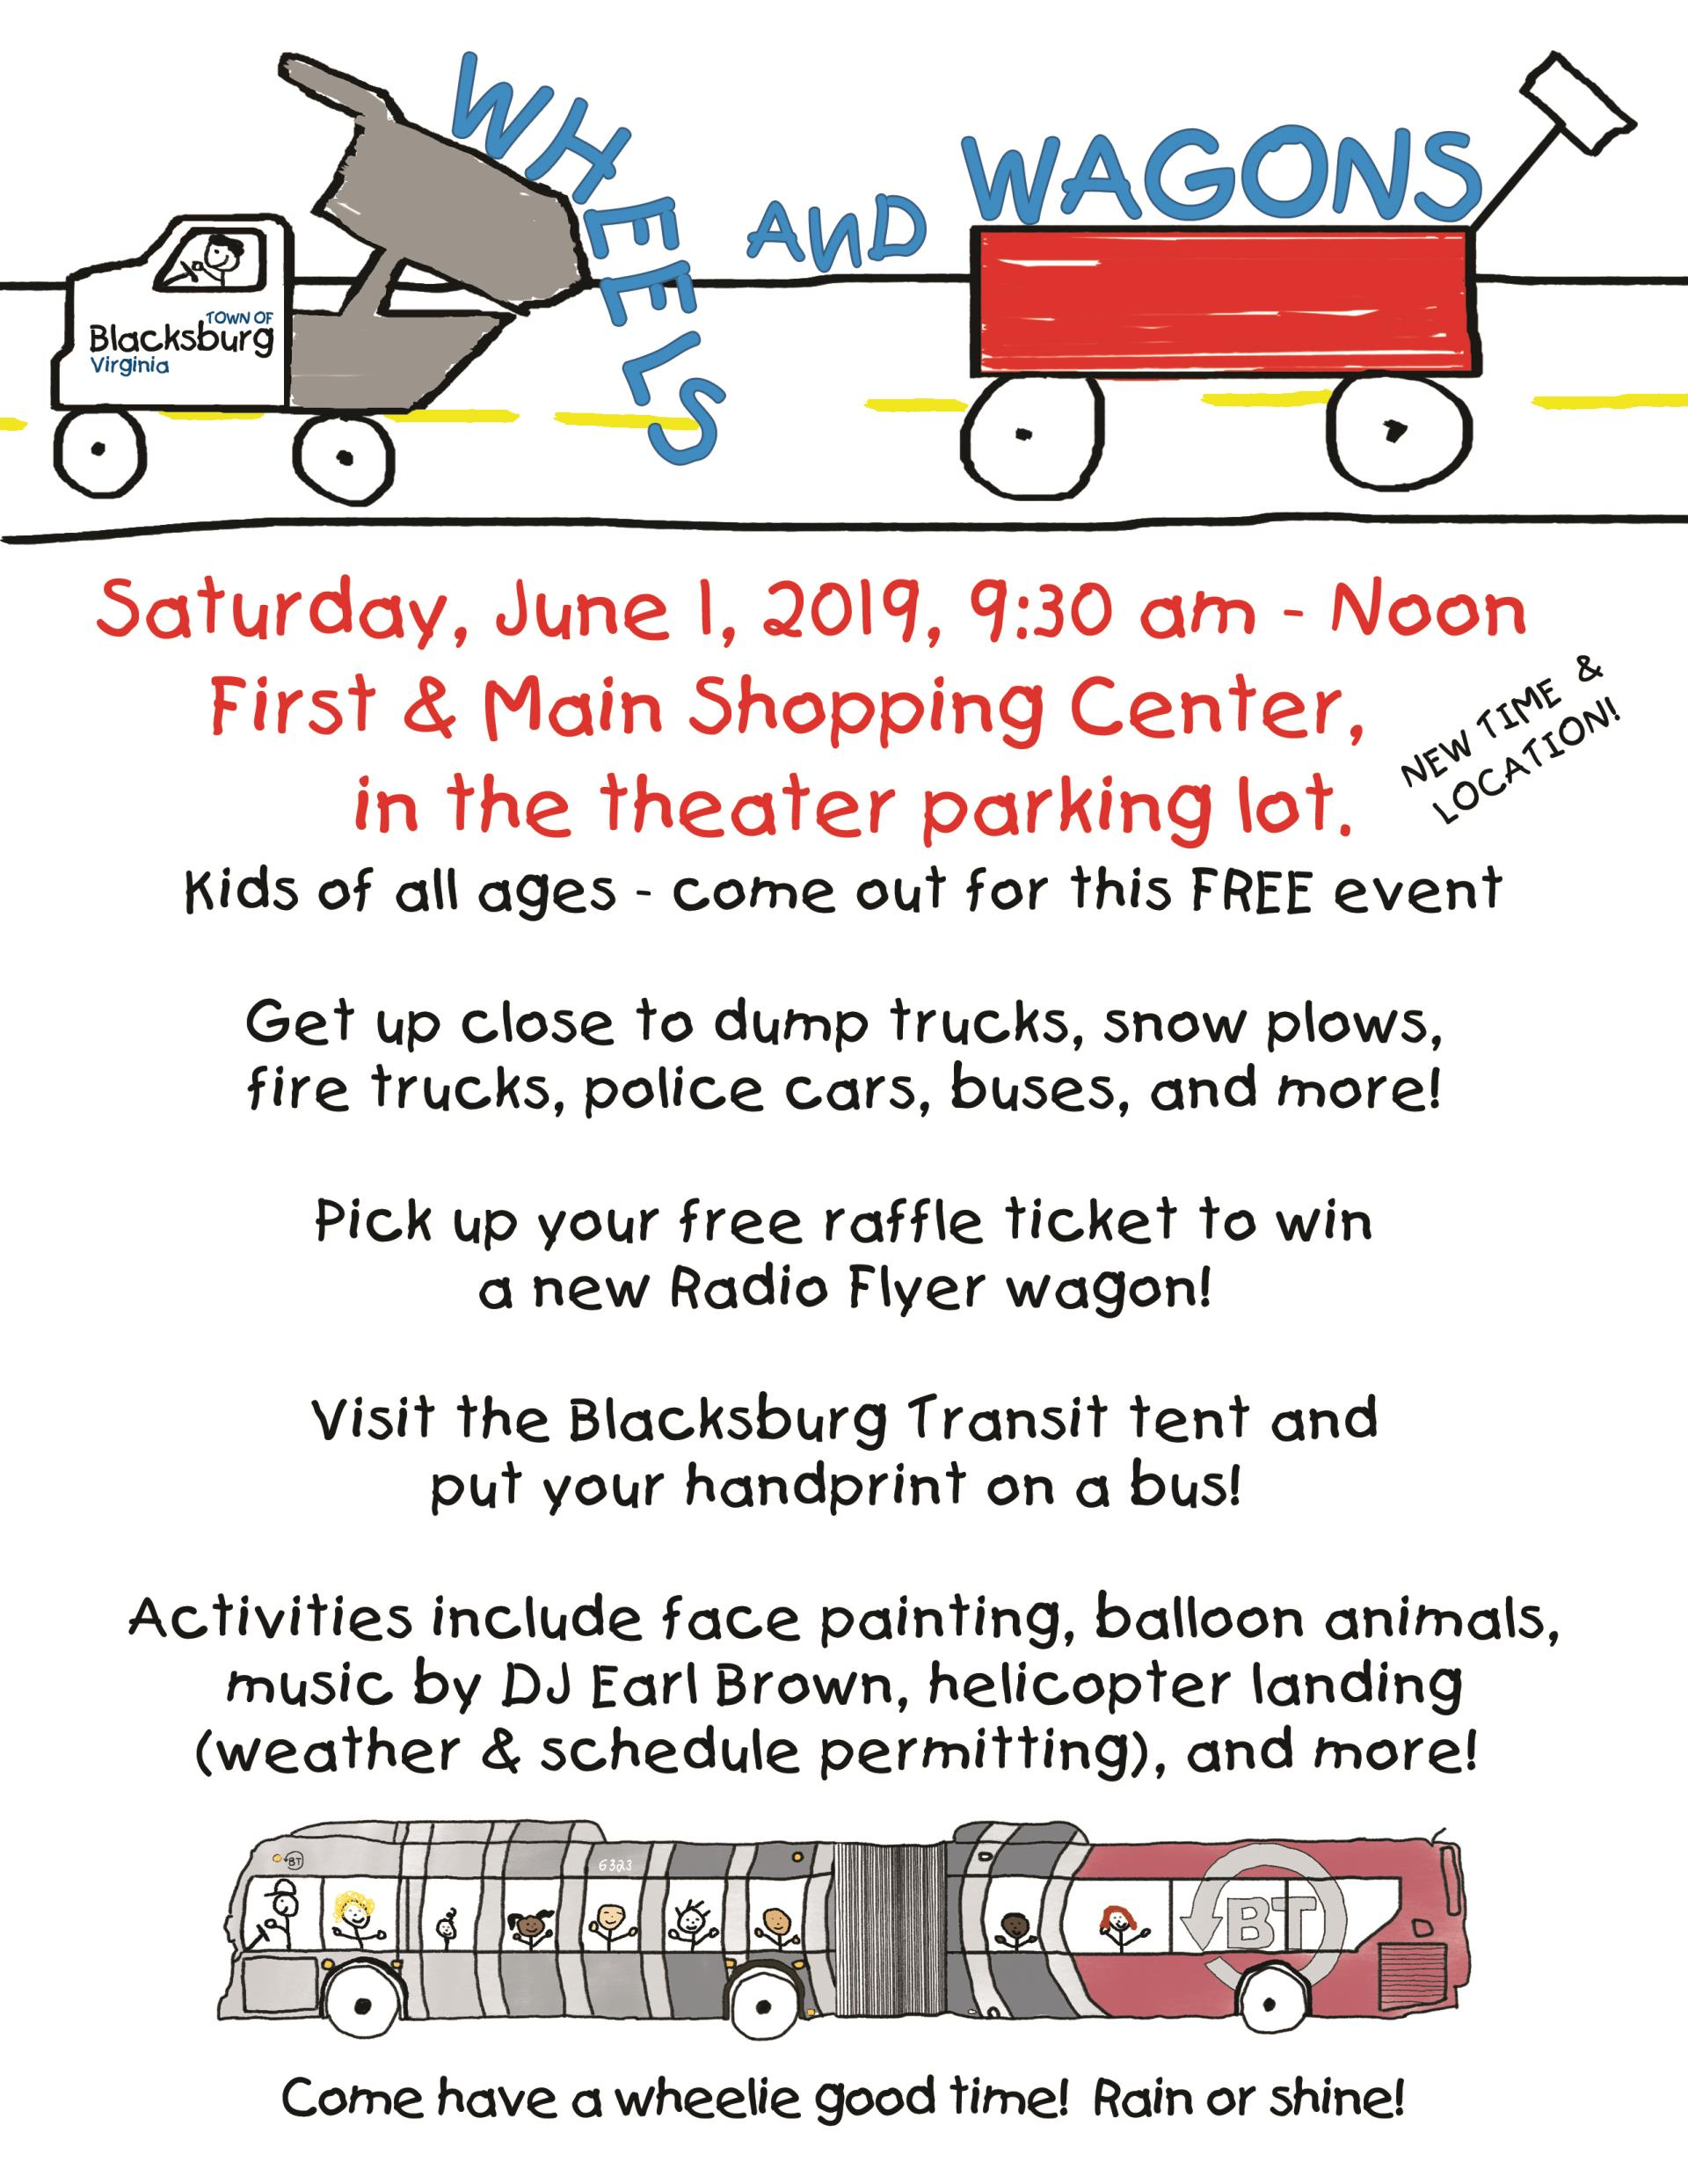 Wheels and Wagons Saturday June 1 2019 9:30 am to noon at the First and Main shopping center in the theater parking lot. Free. Get up close to trucks, snow plows fire trucks and more.